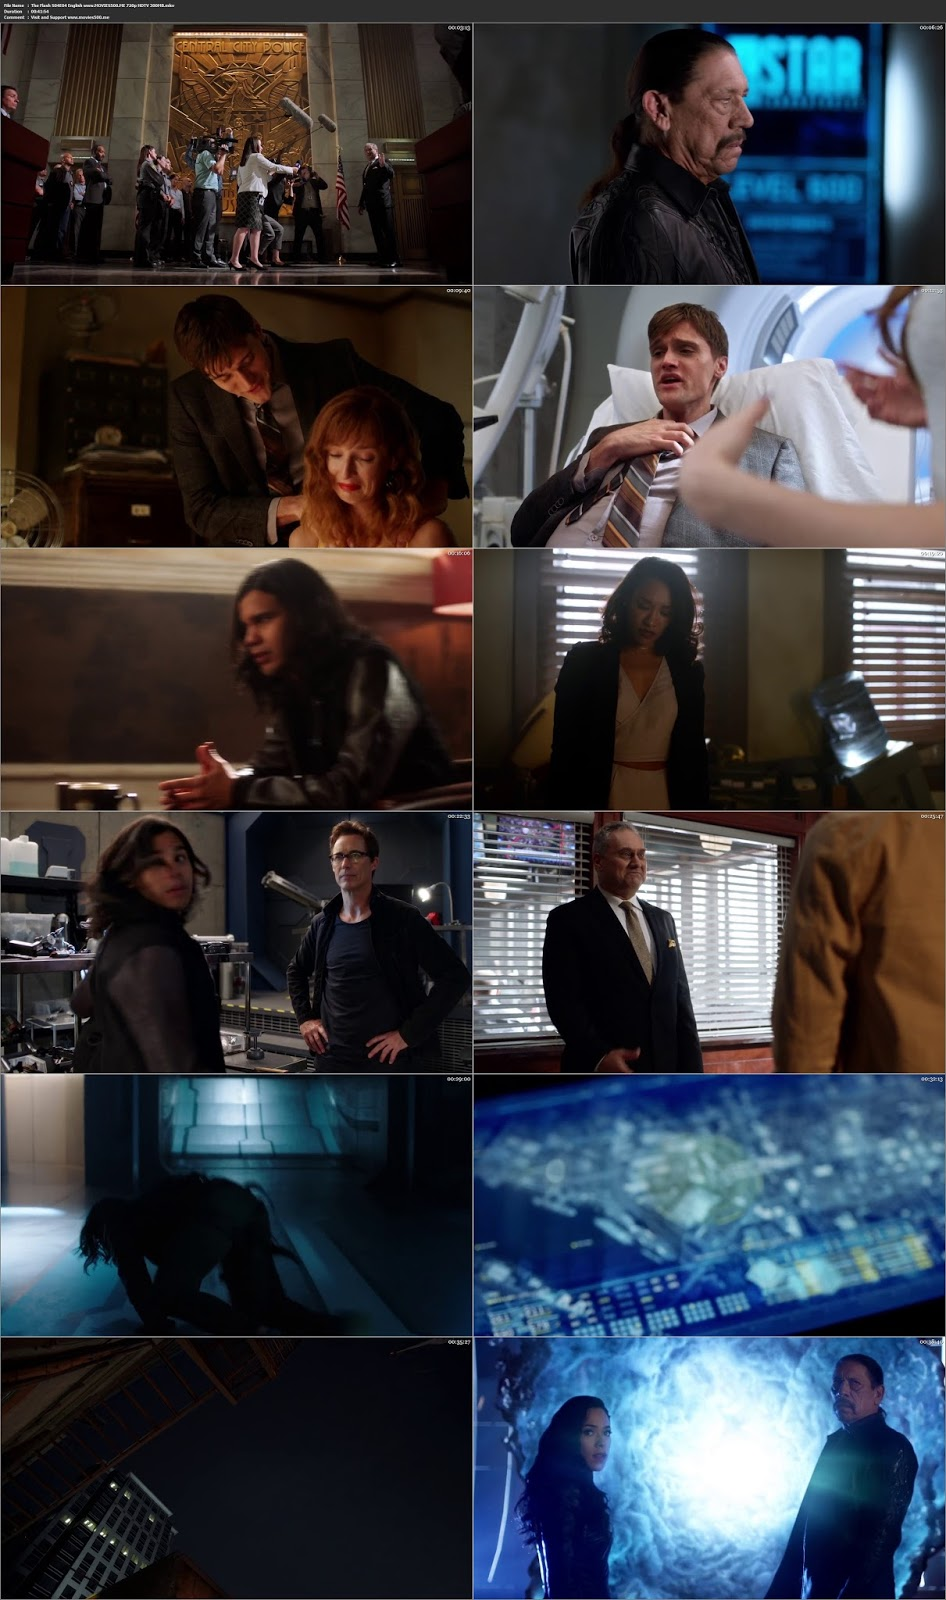 The Flash S04E04 English 325MB HDTVRip 720 at sytppm.biz